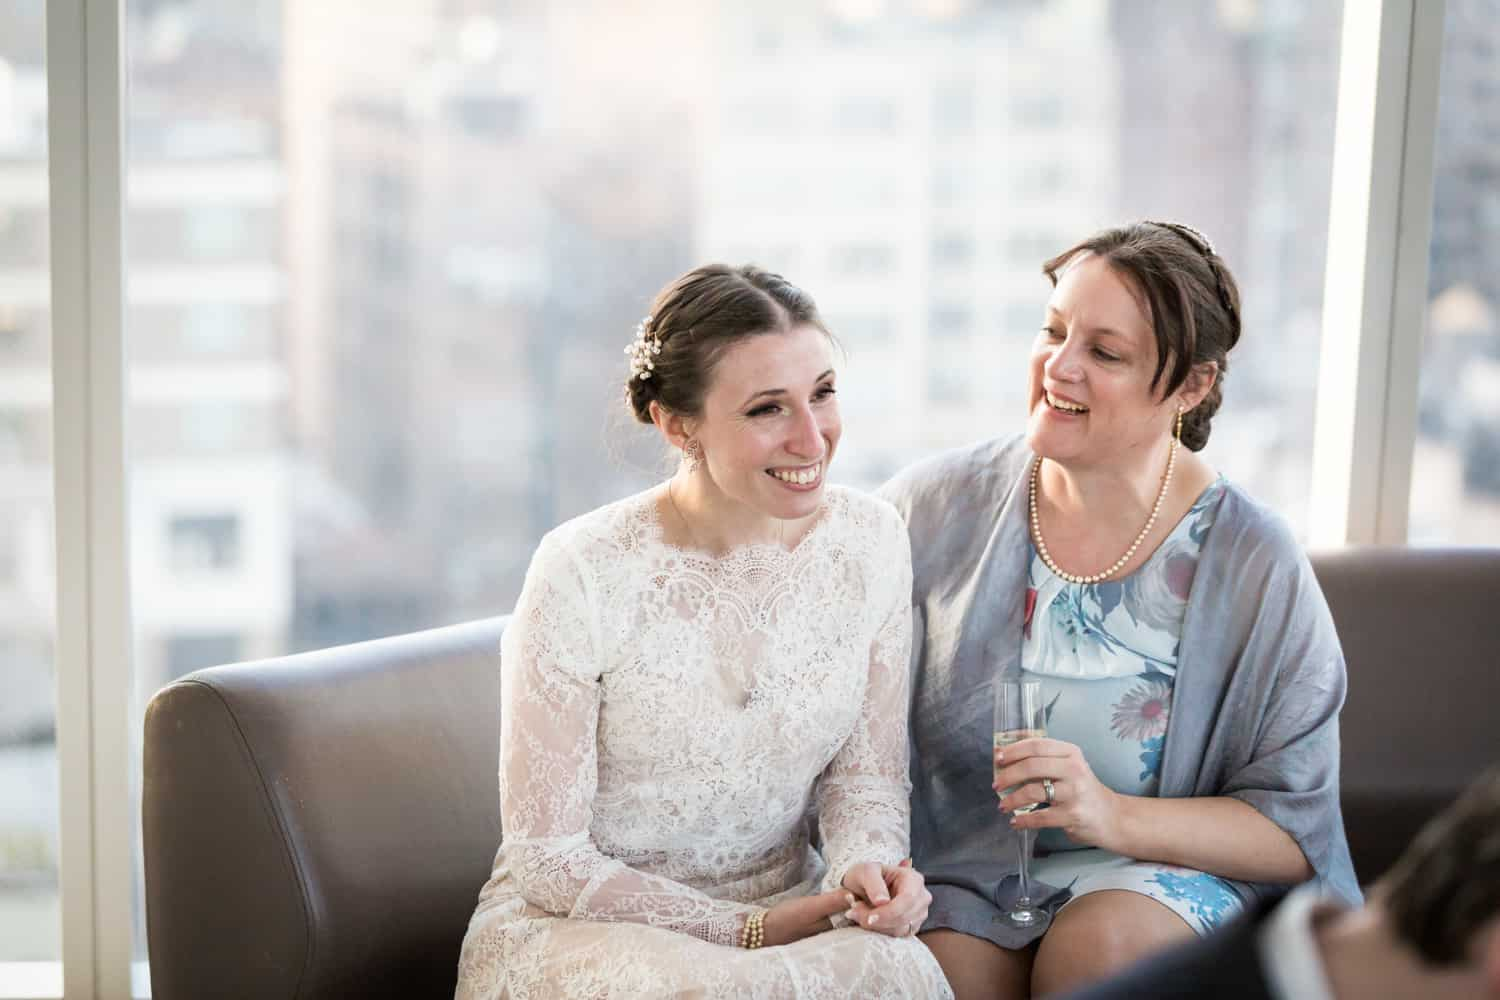 Bride and bridesmaid chatting on couch for an article on what is wedding photojournalism